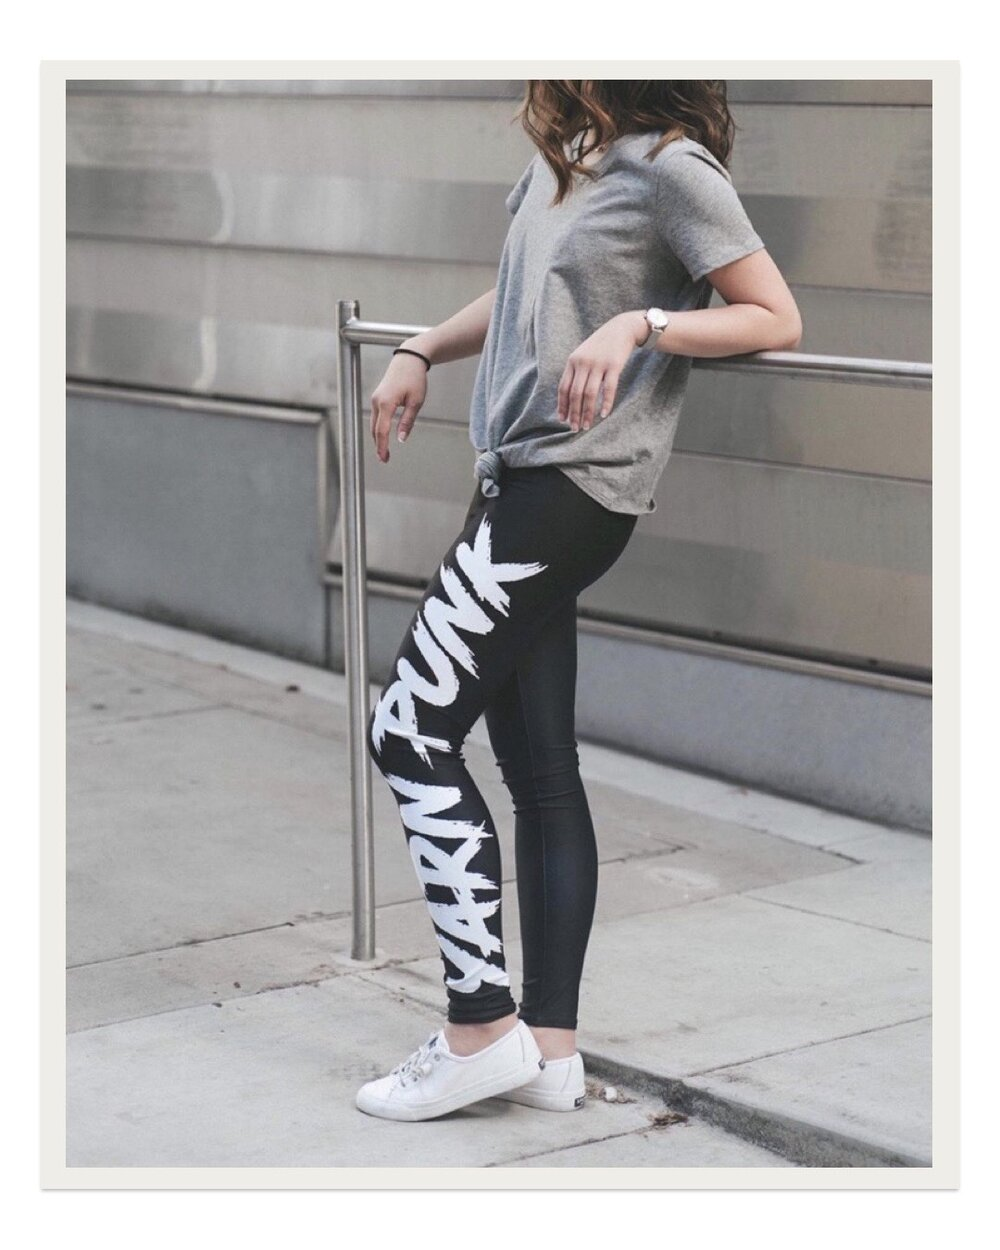 "Probably the coolest and most modern ""maker"" apparel I've seen, these Yarn Punk leggings are SO comfortable and stretchy. I've worn them to the gym, running errands, and at home while lounging and they are some of my fave comfy pants. The addition of the ""yarn punk"" text makes them so fun and cool!"